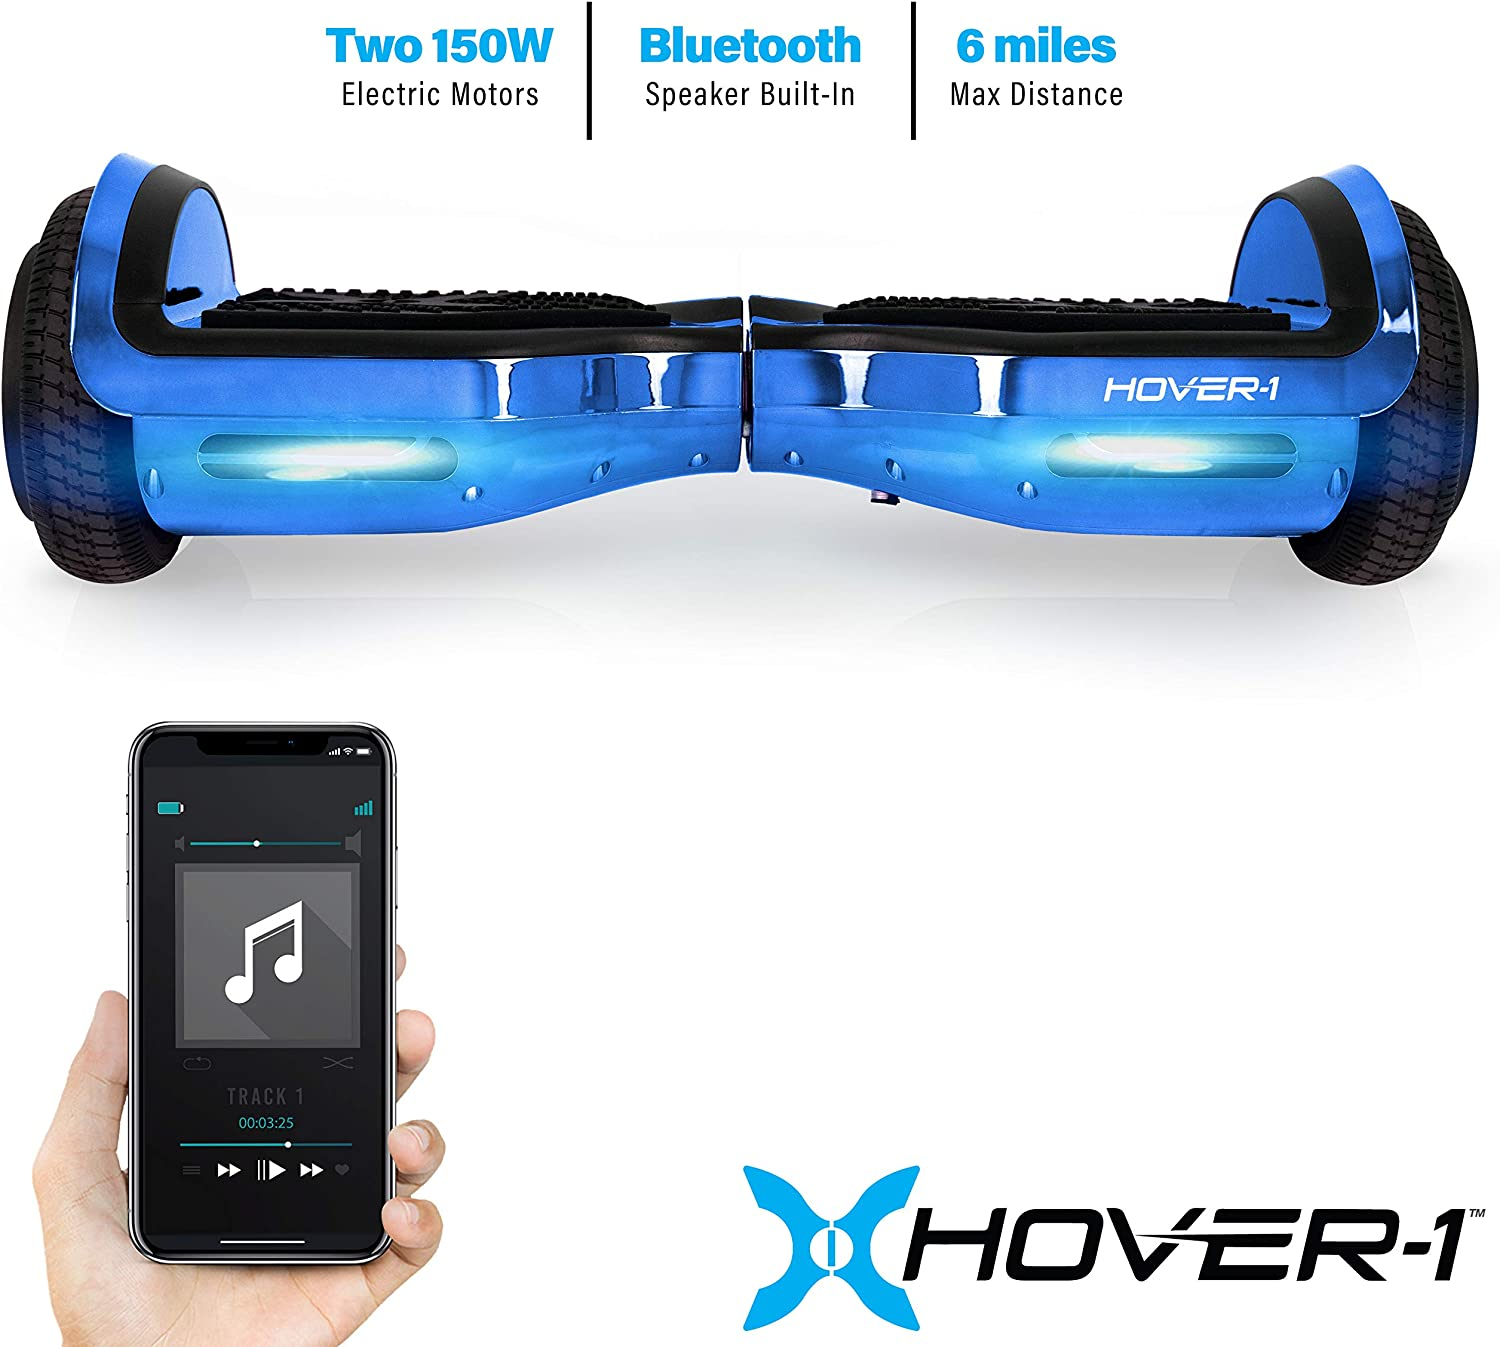 Hover-1 Chrome Electric Hoverboard Scooter Blue - 1